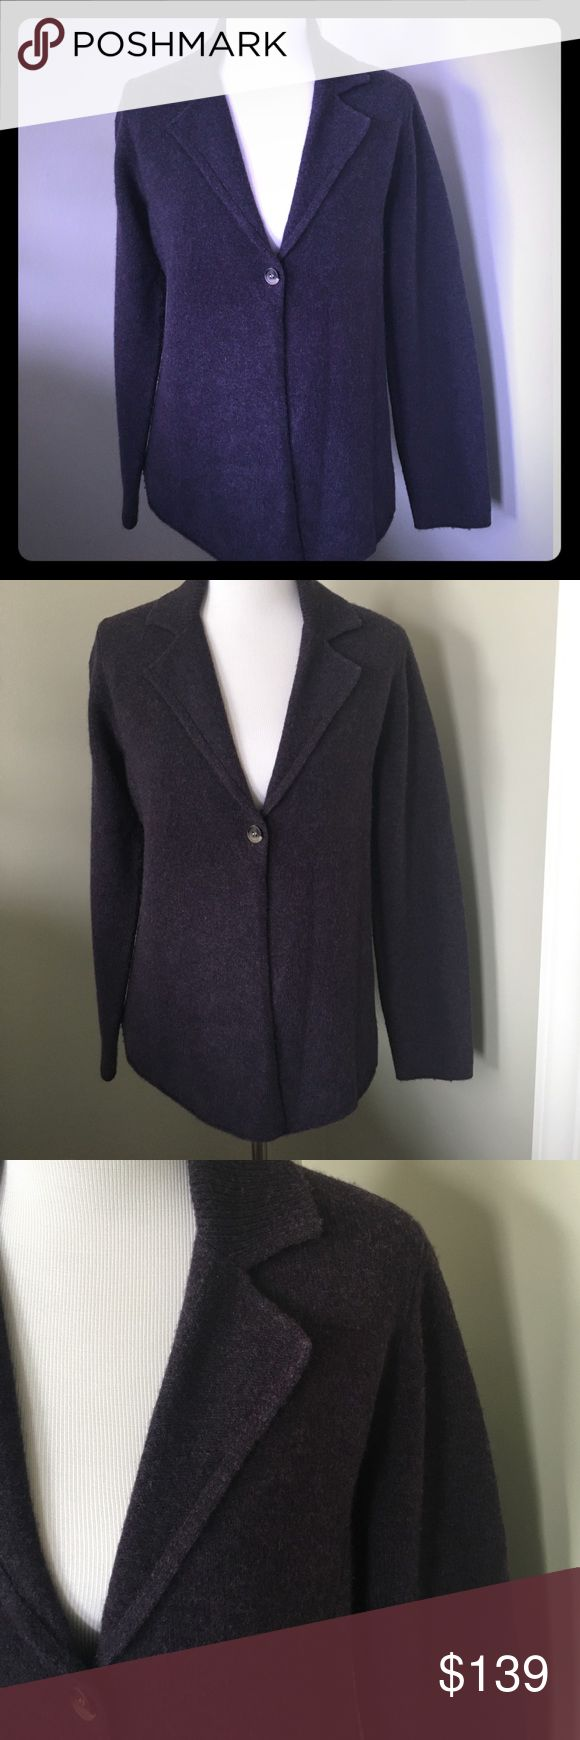 Eileen Fisher Heathered Plum Cardigan Sweater SO SOFT!  SO GORGEOUS!  88% lambswool/12% Cashmere.  Love this and paid a fortune but it's too big on me now😔. One button.  Heather plum color. ❤️❤️❤️❤️❤️❤️ Eileen Fisher Sweaters Cardigans